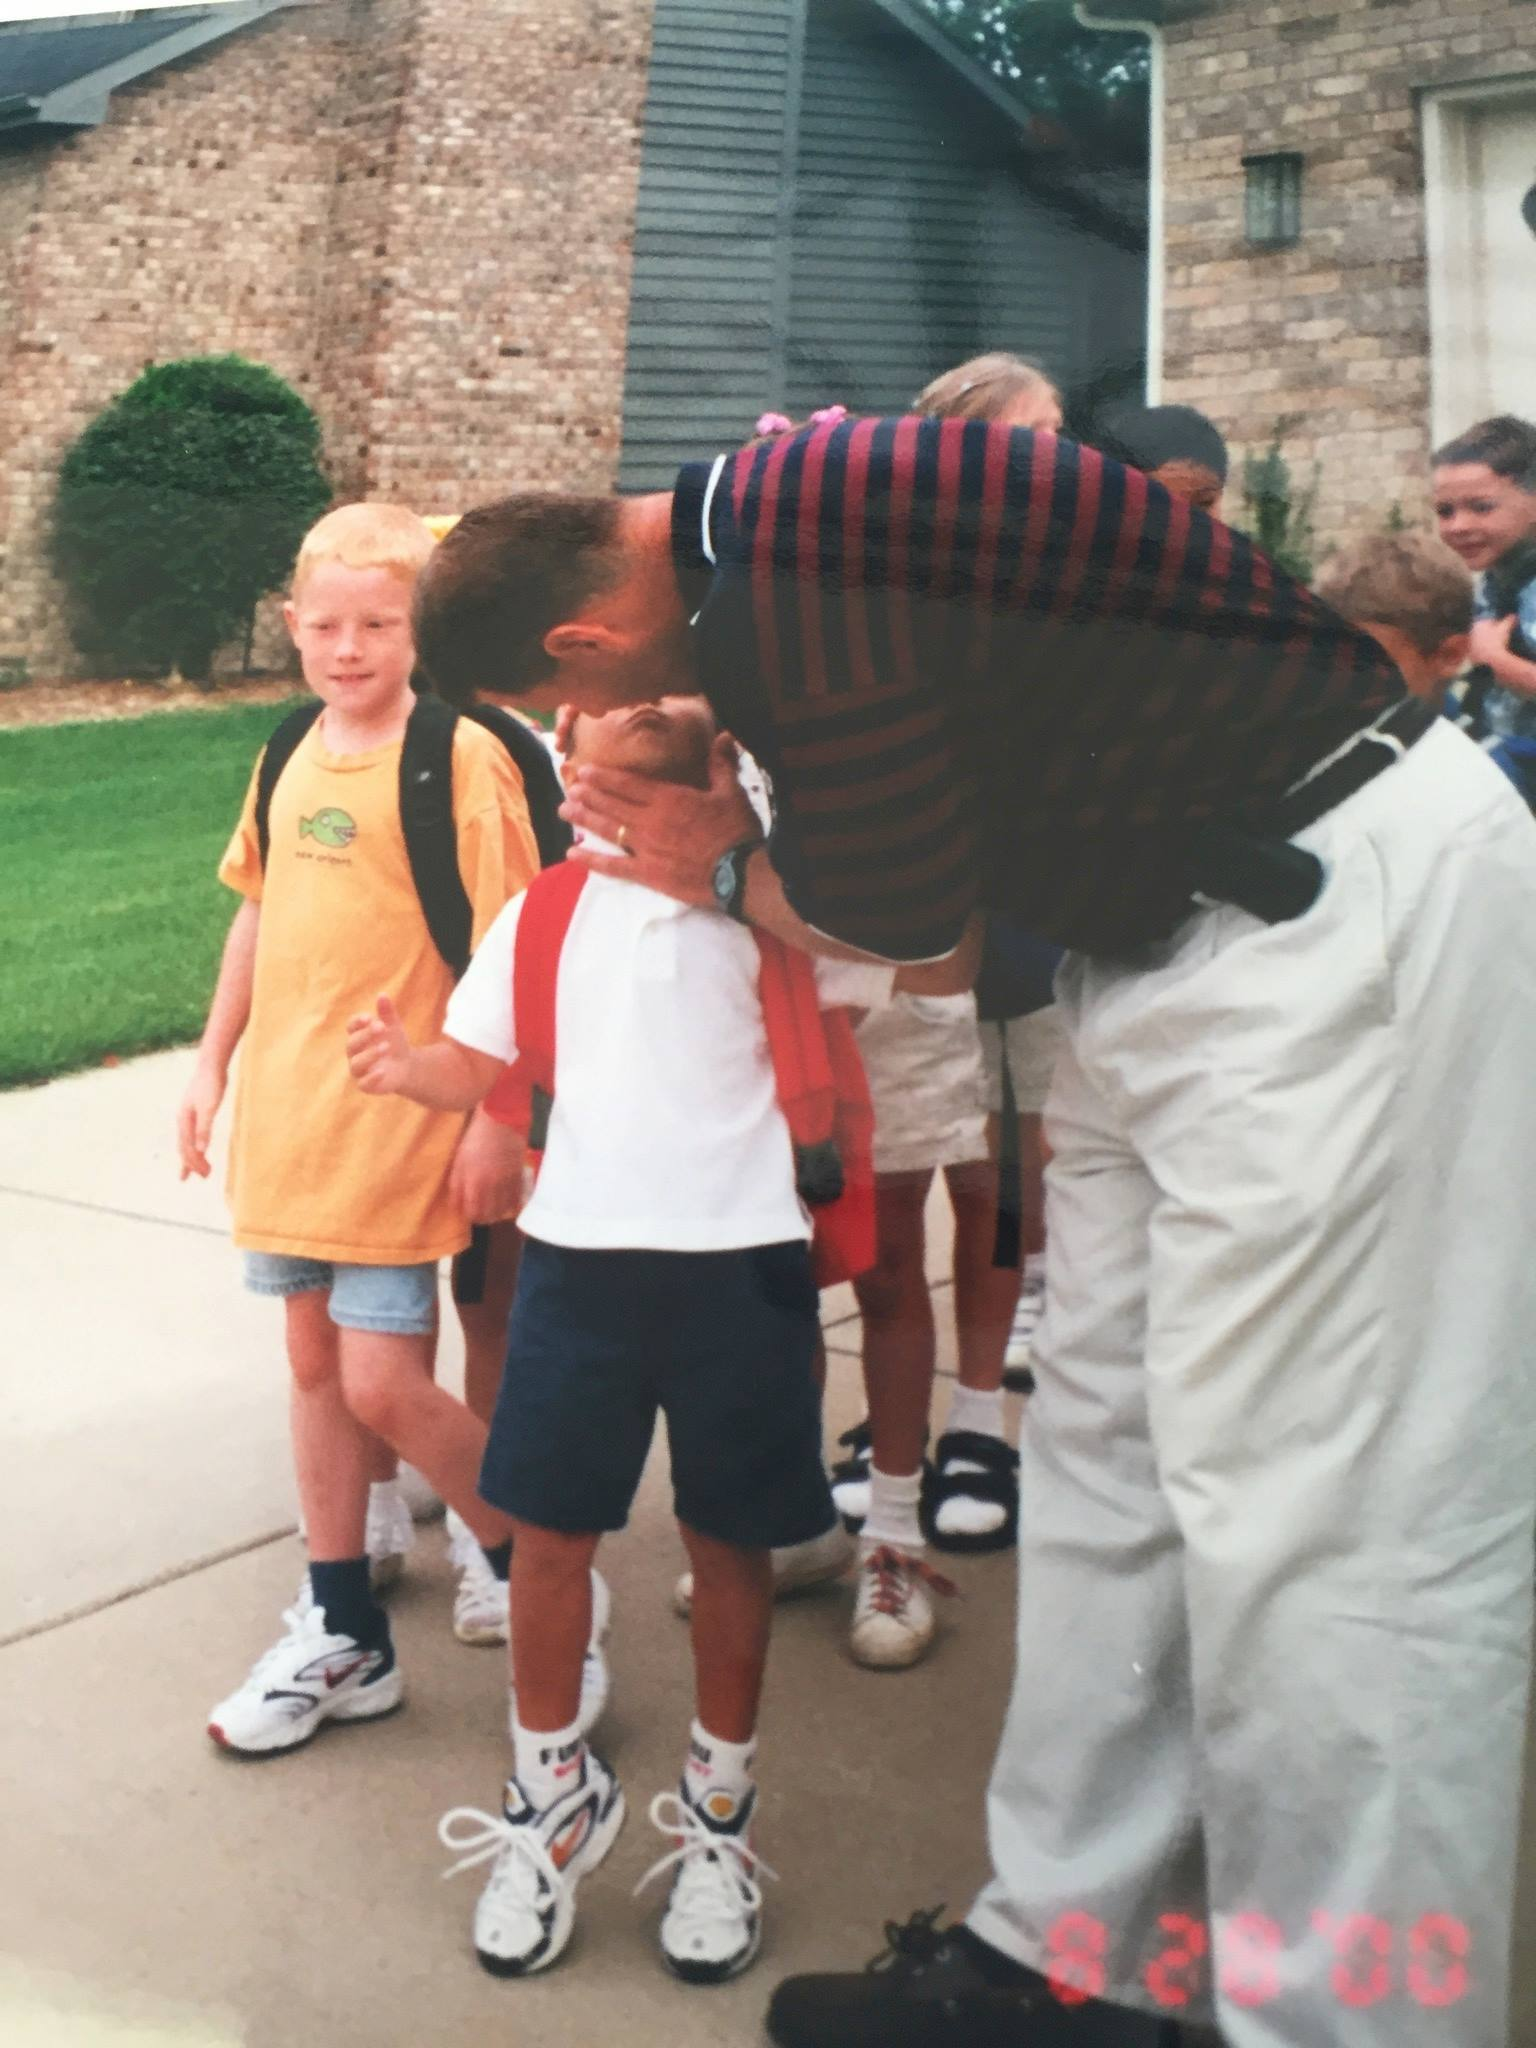 That scary first day of school!